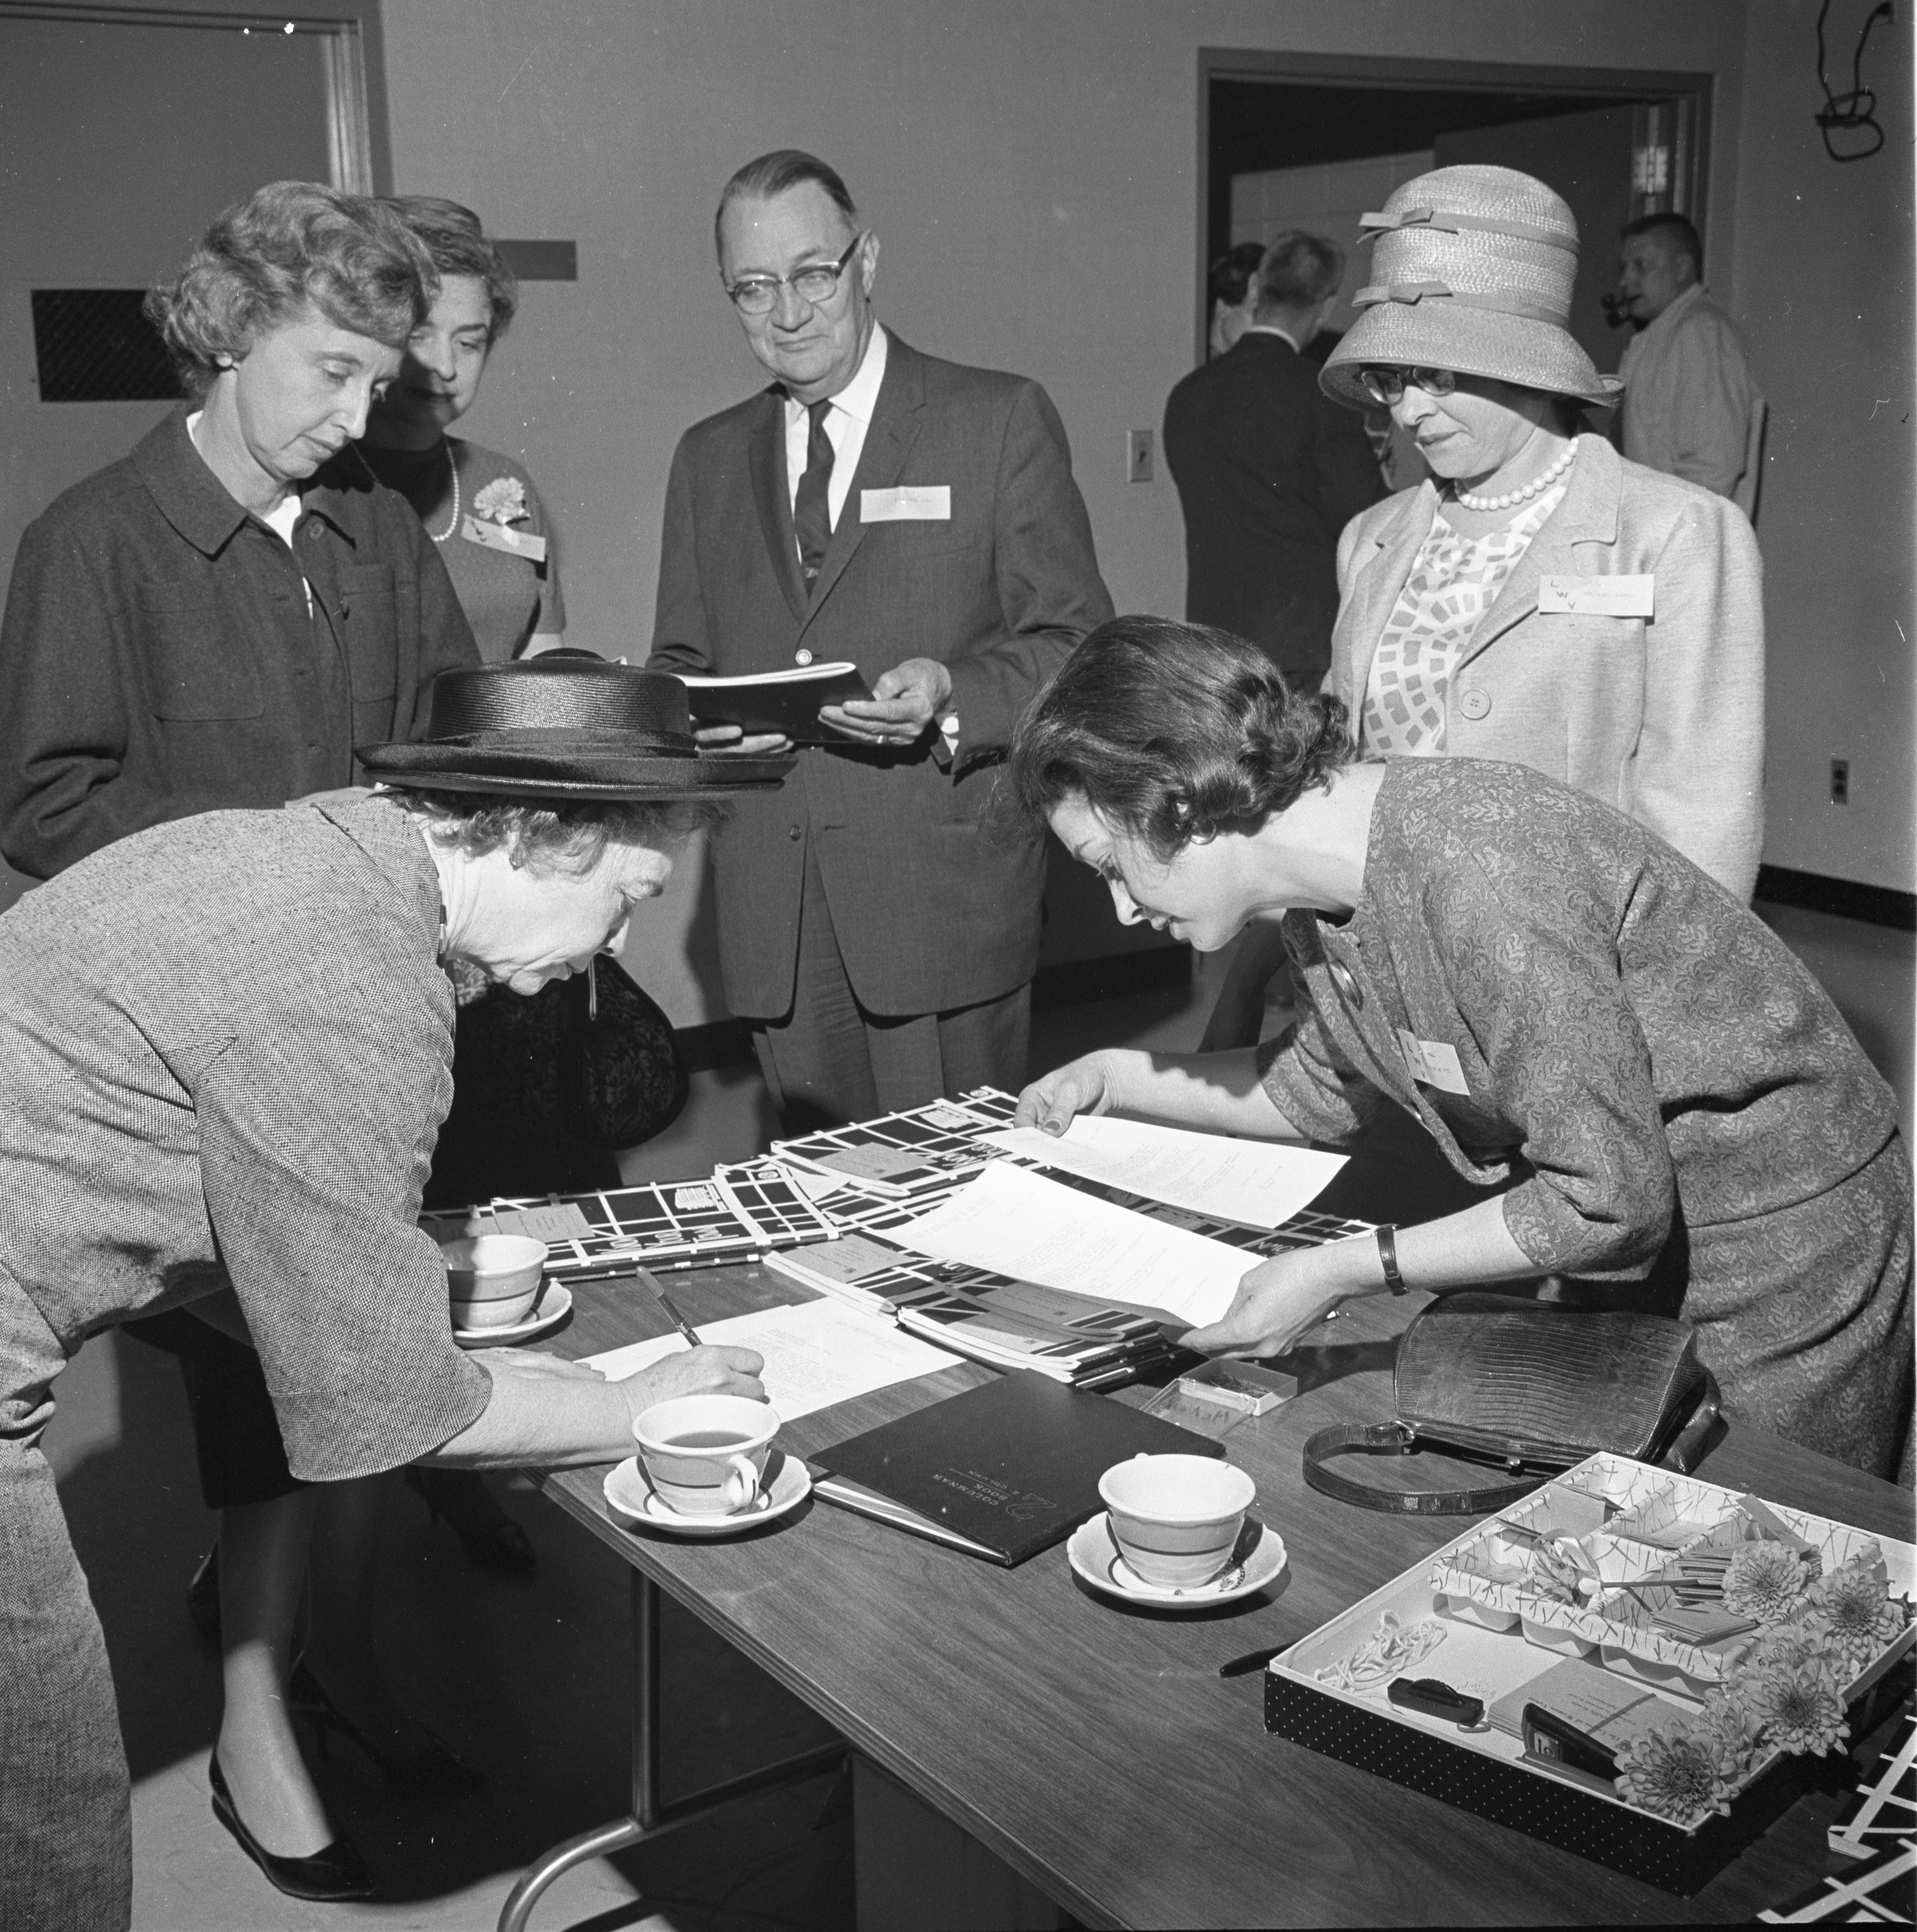 Cecil Creal & LWV Members At A League Of Women Voters Meeting, April 1963 image